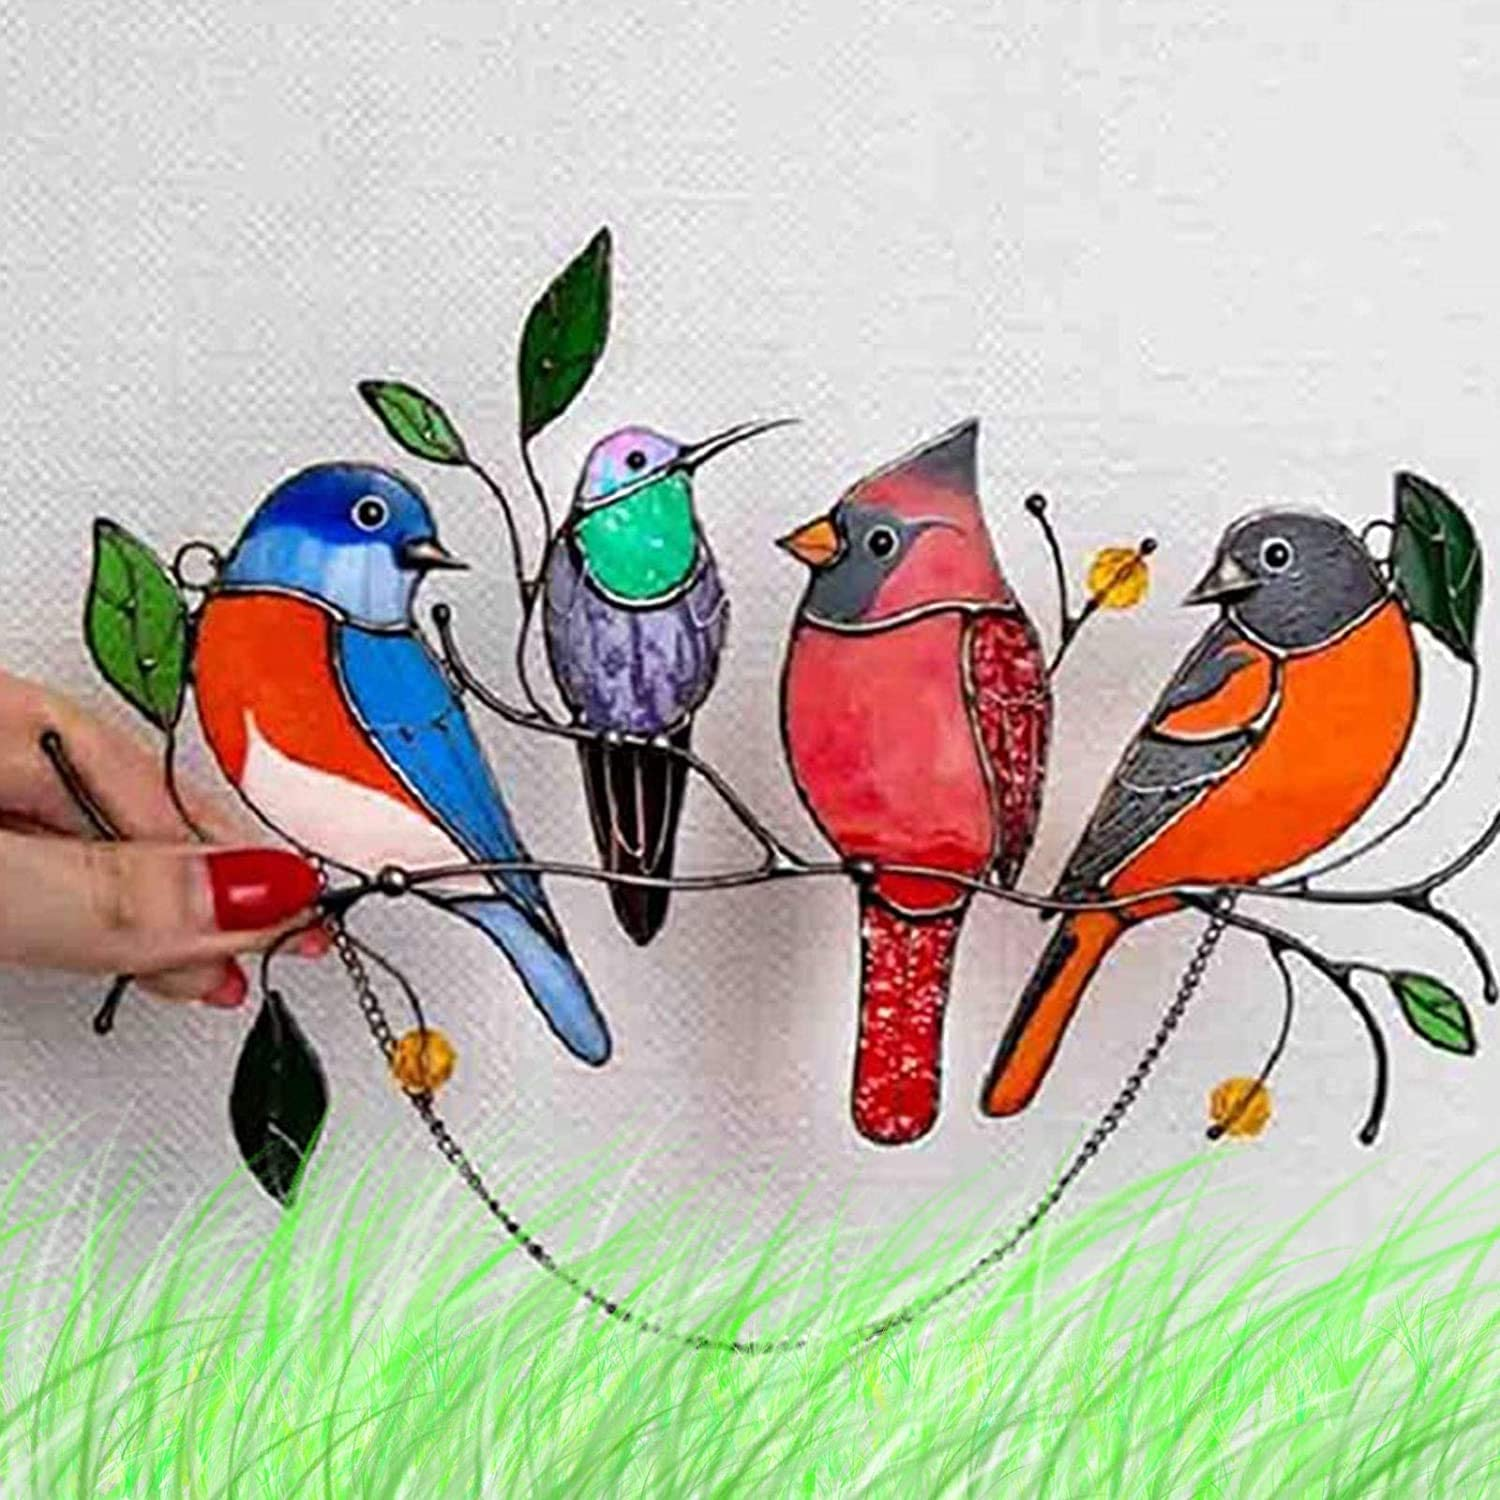 FTALGS Multicolor Birds on a Wire High Stained Glass Suncatcher Window Panel,Hanging for Home Decor,Living Room, Bathroom, Hanging Vintage Wall Sconce Windows Doors Home Decoration and Gifts (4 Birds)